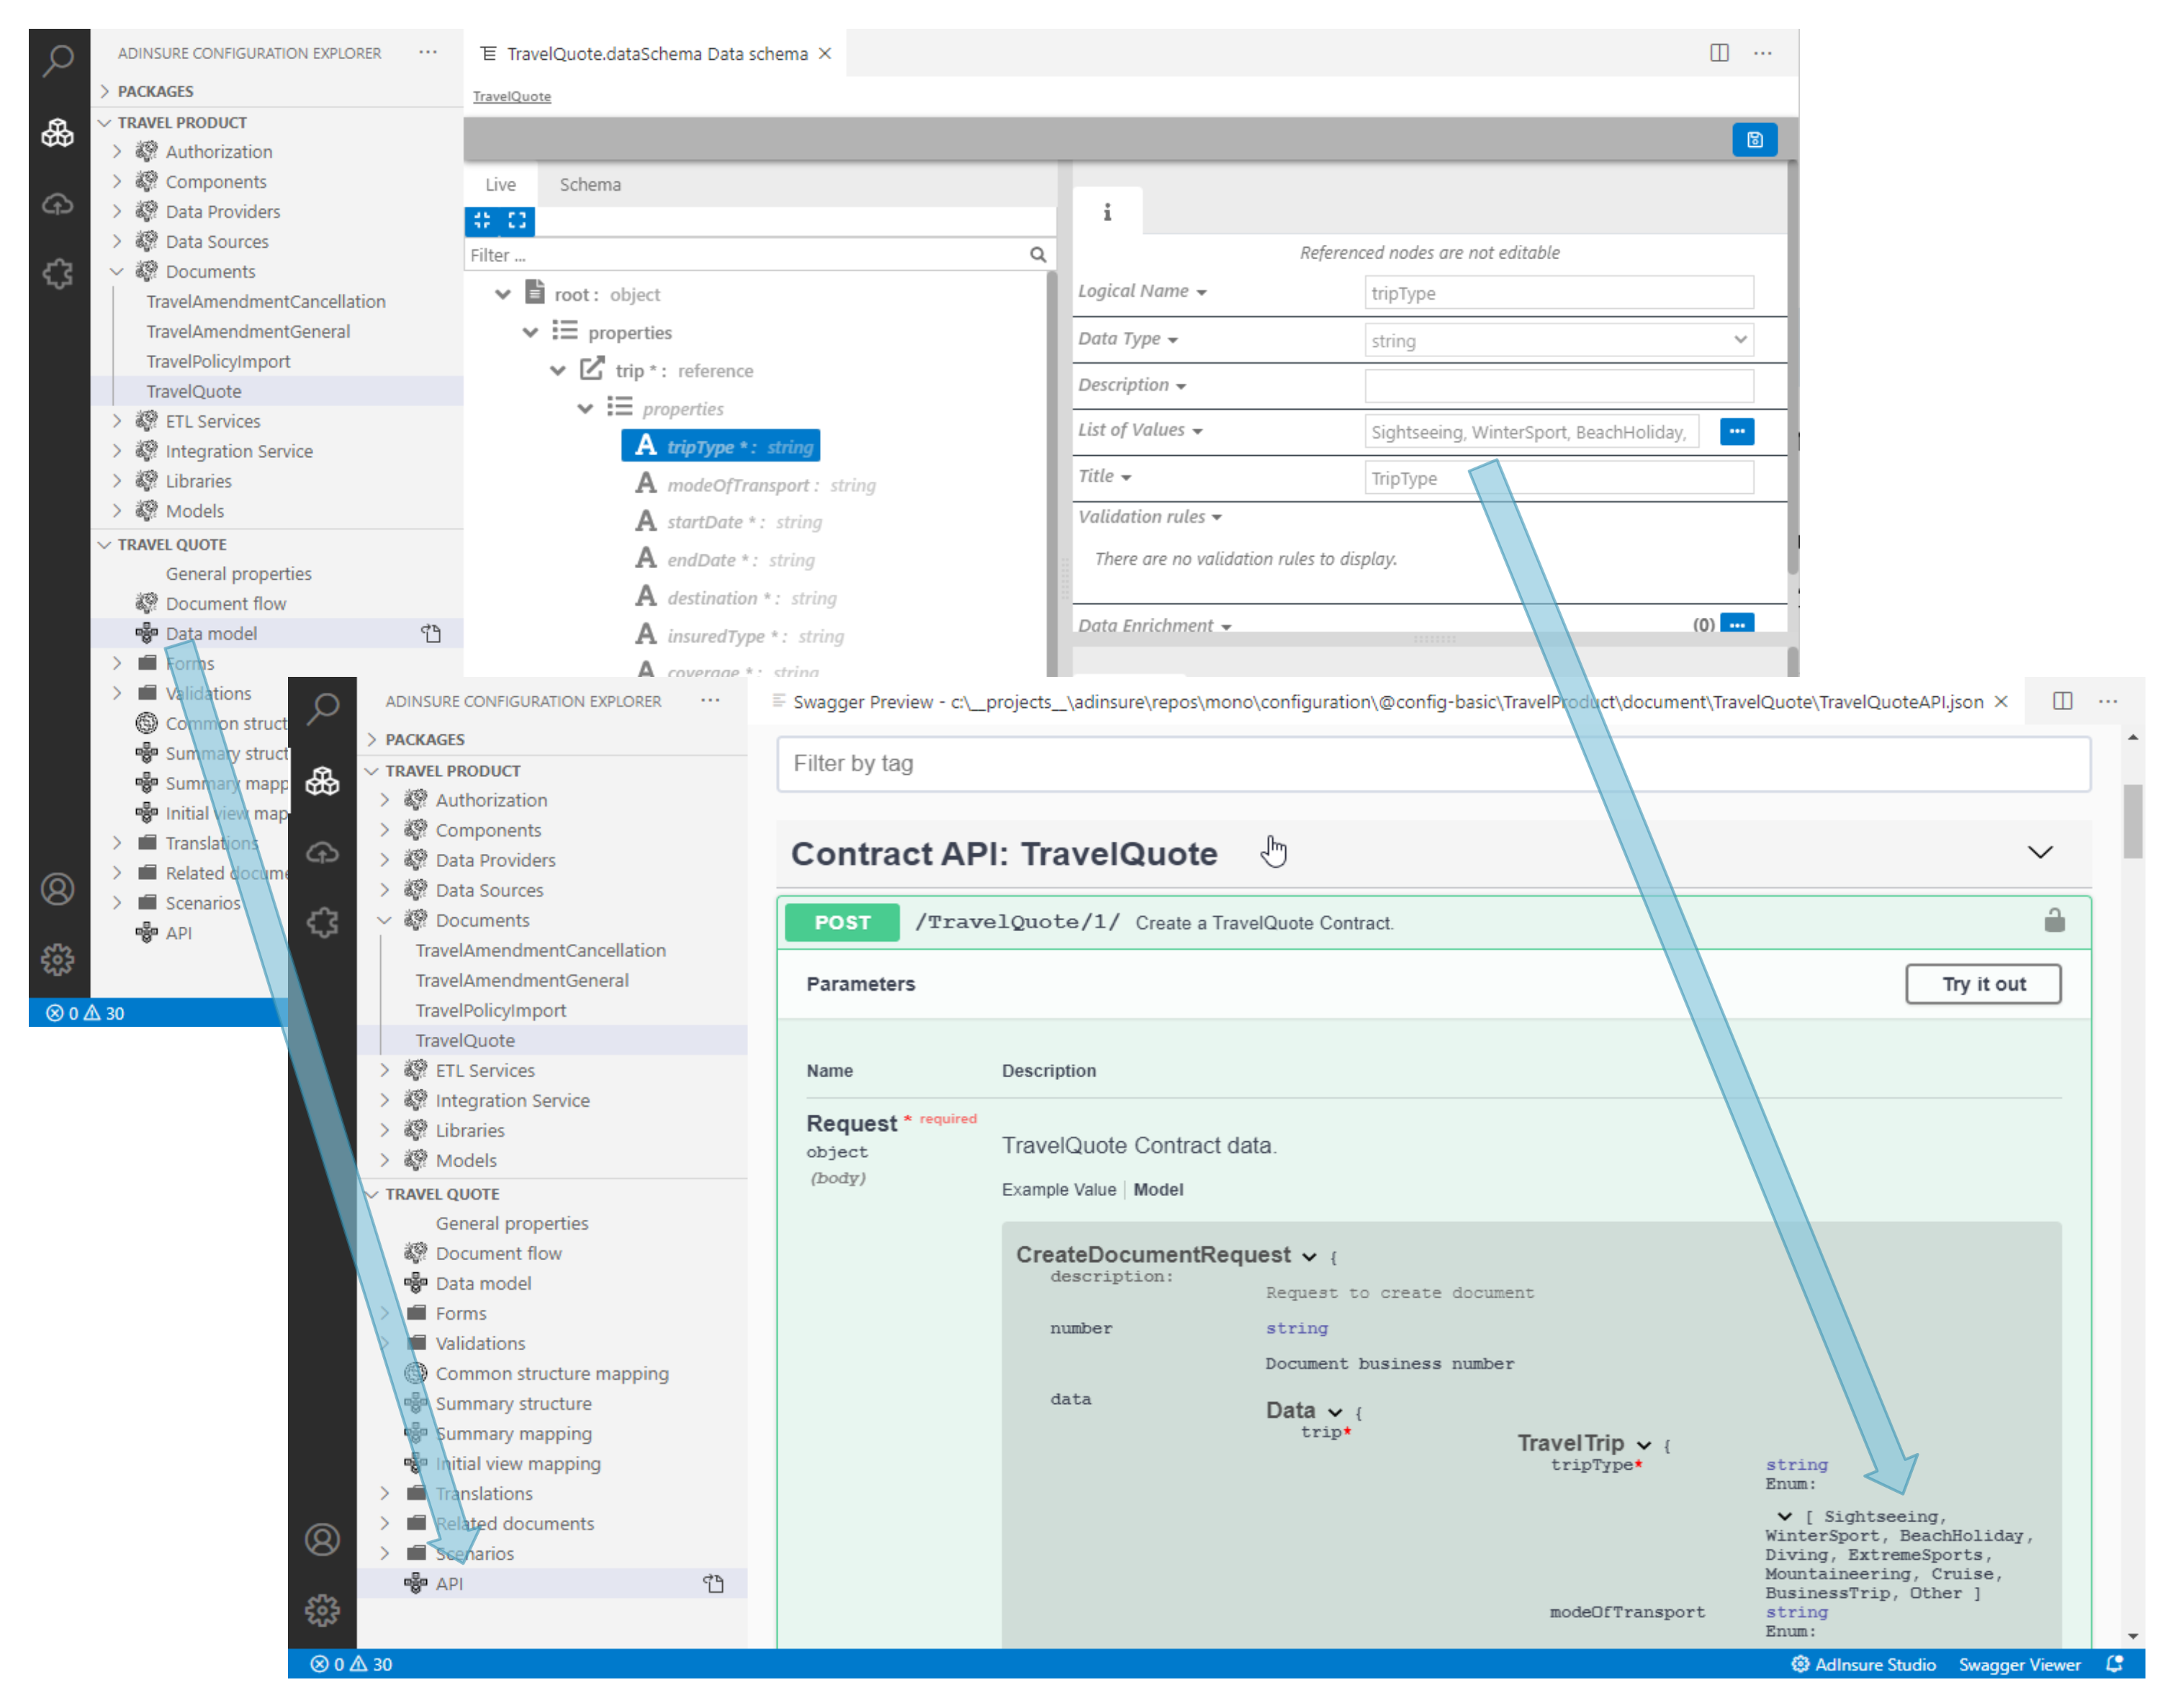 Image - from sales quote configuration to a RESTful API with no additional effort.